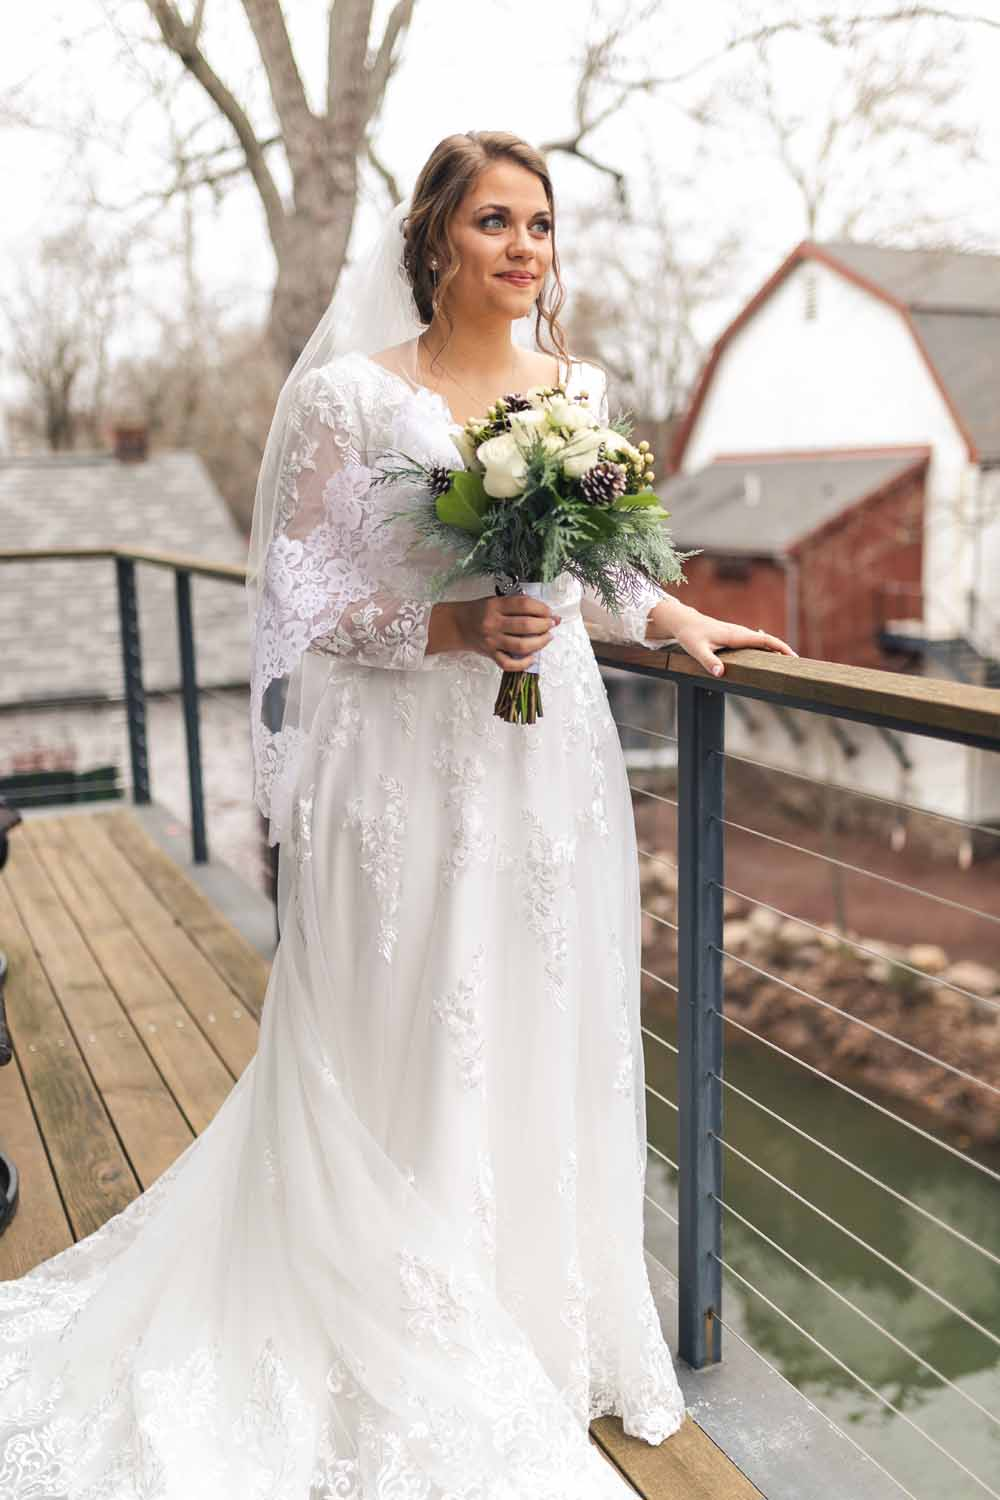 Outdoor bridal portrait at Carriage House